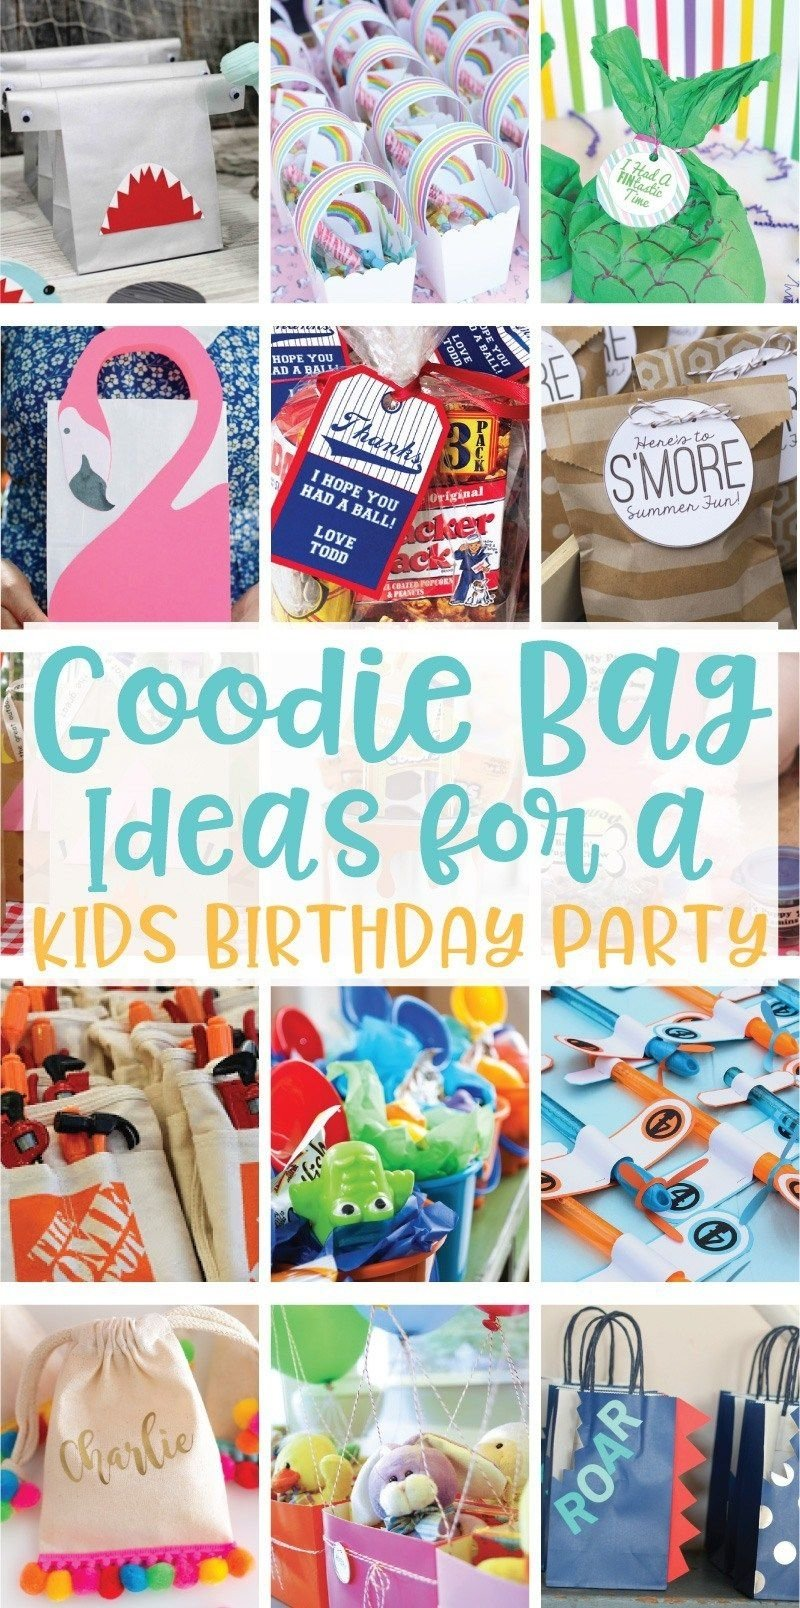 10 Unique Pool Party Gift Bag Ideas 20 creative goodie bag ideas for kids birthday parties on goodie 5